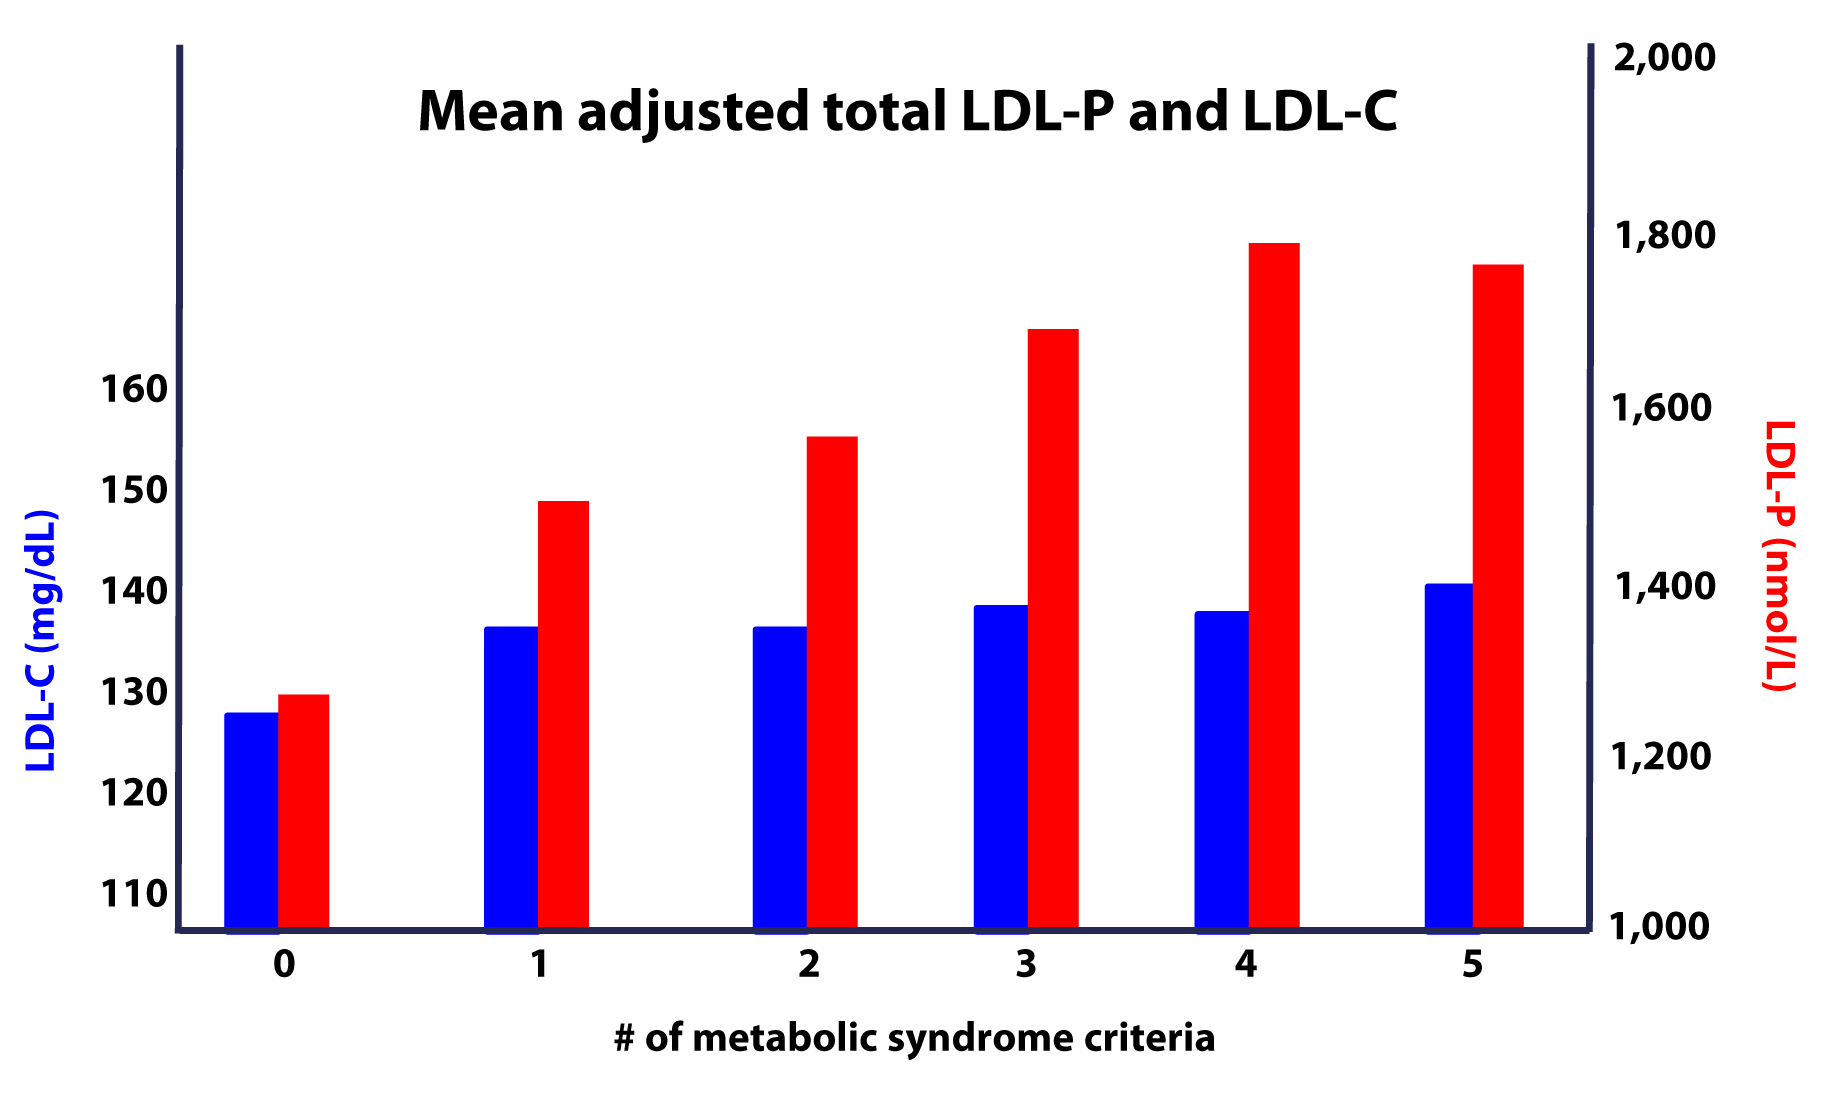 LDL-C vs. LDL-P in MS